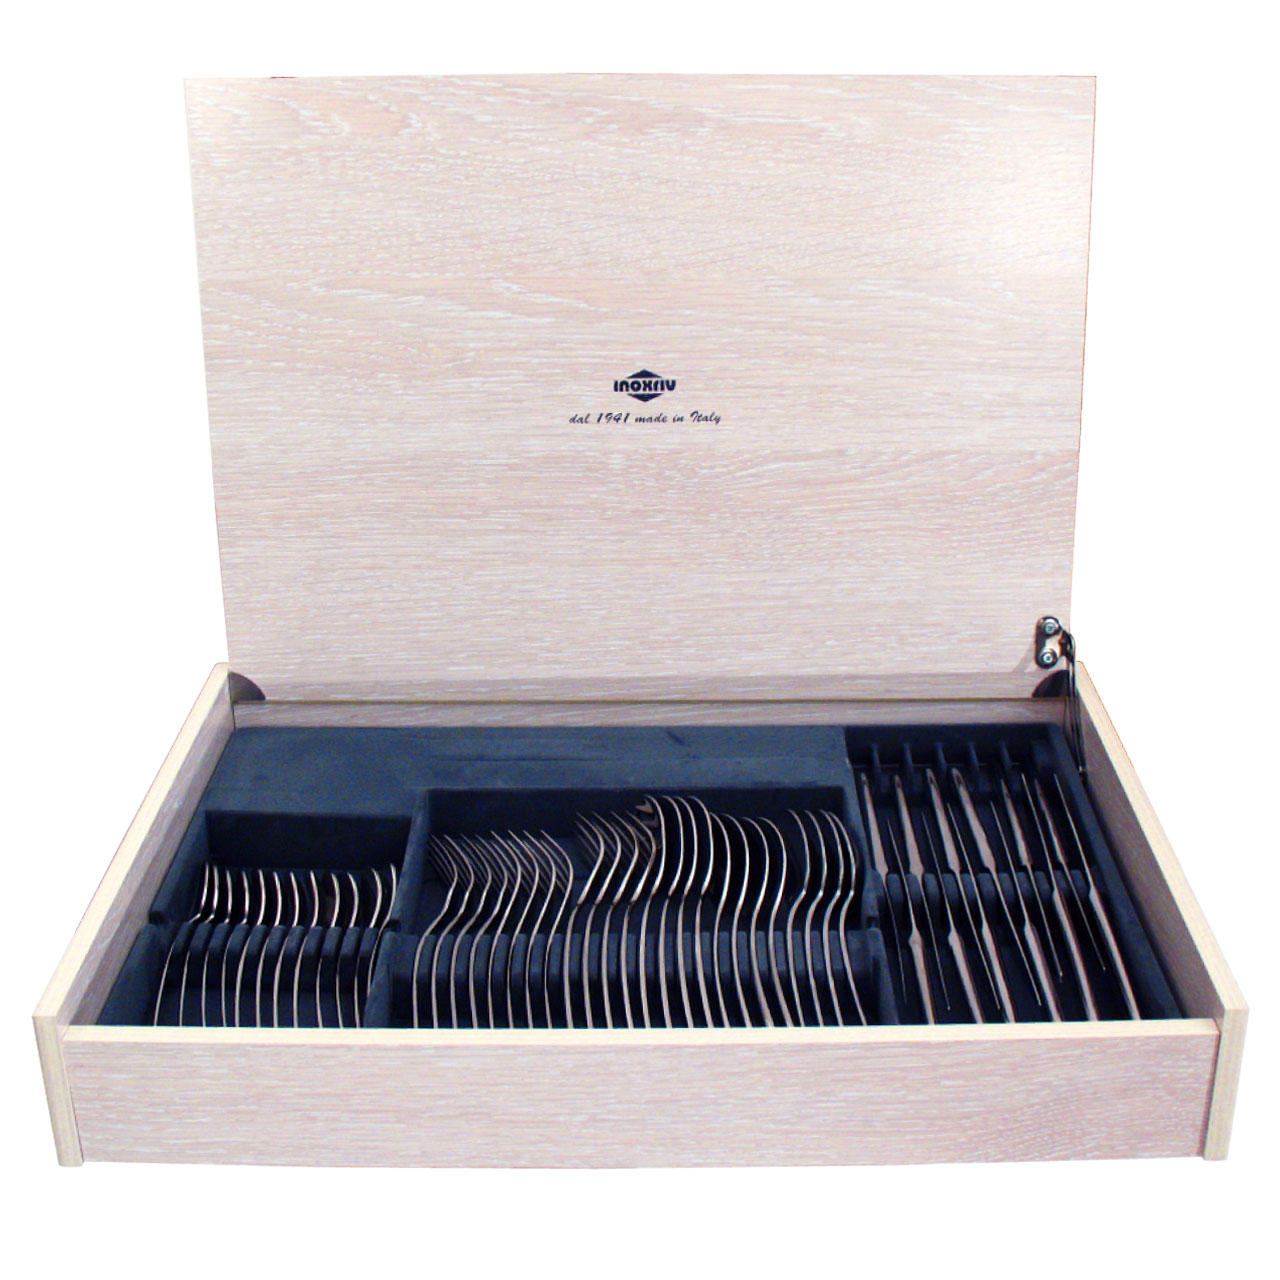 66223048 48 pcs. cutlery set Luxury Case